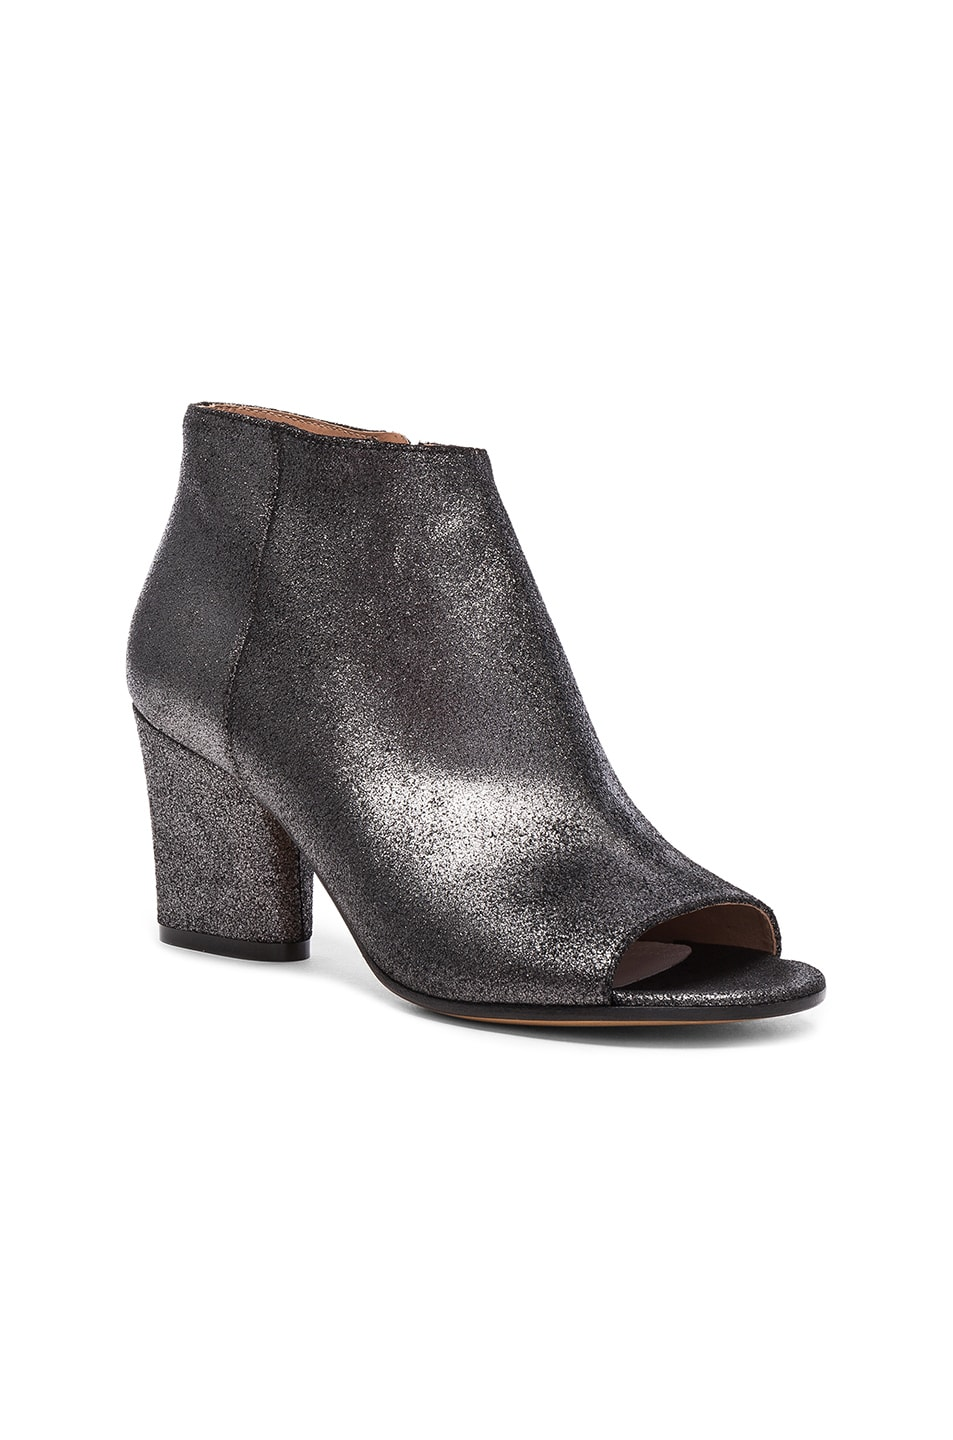 Image 2 of Maison Margiela Open Toe Booties in Black Metallic